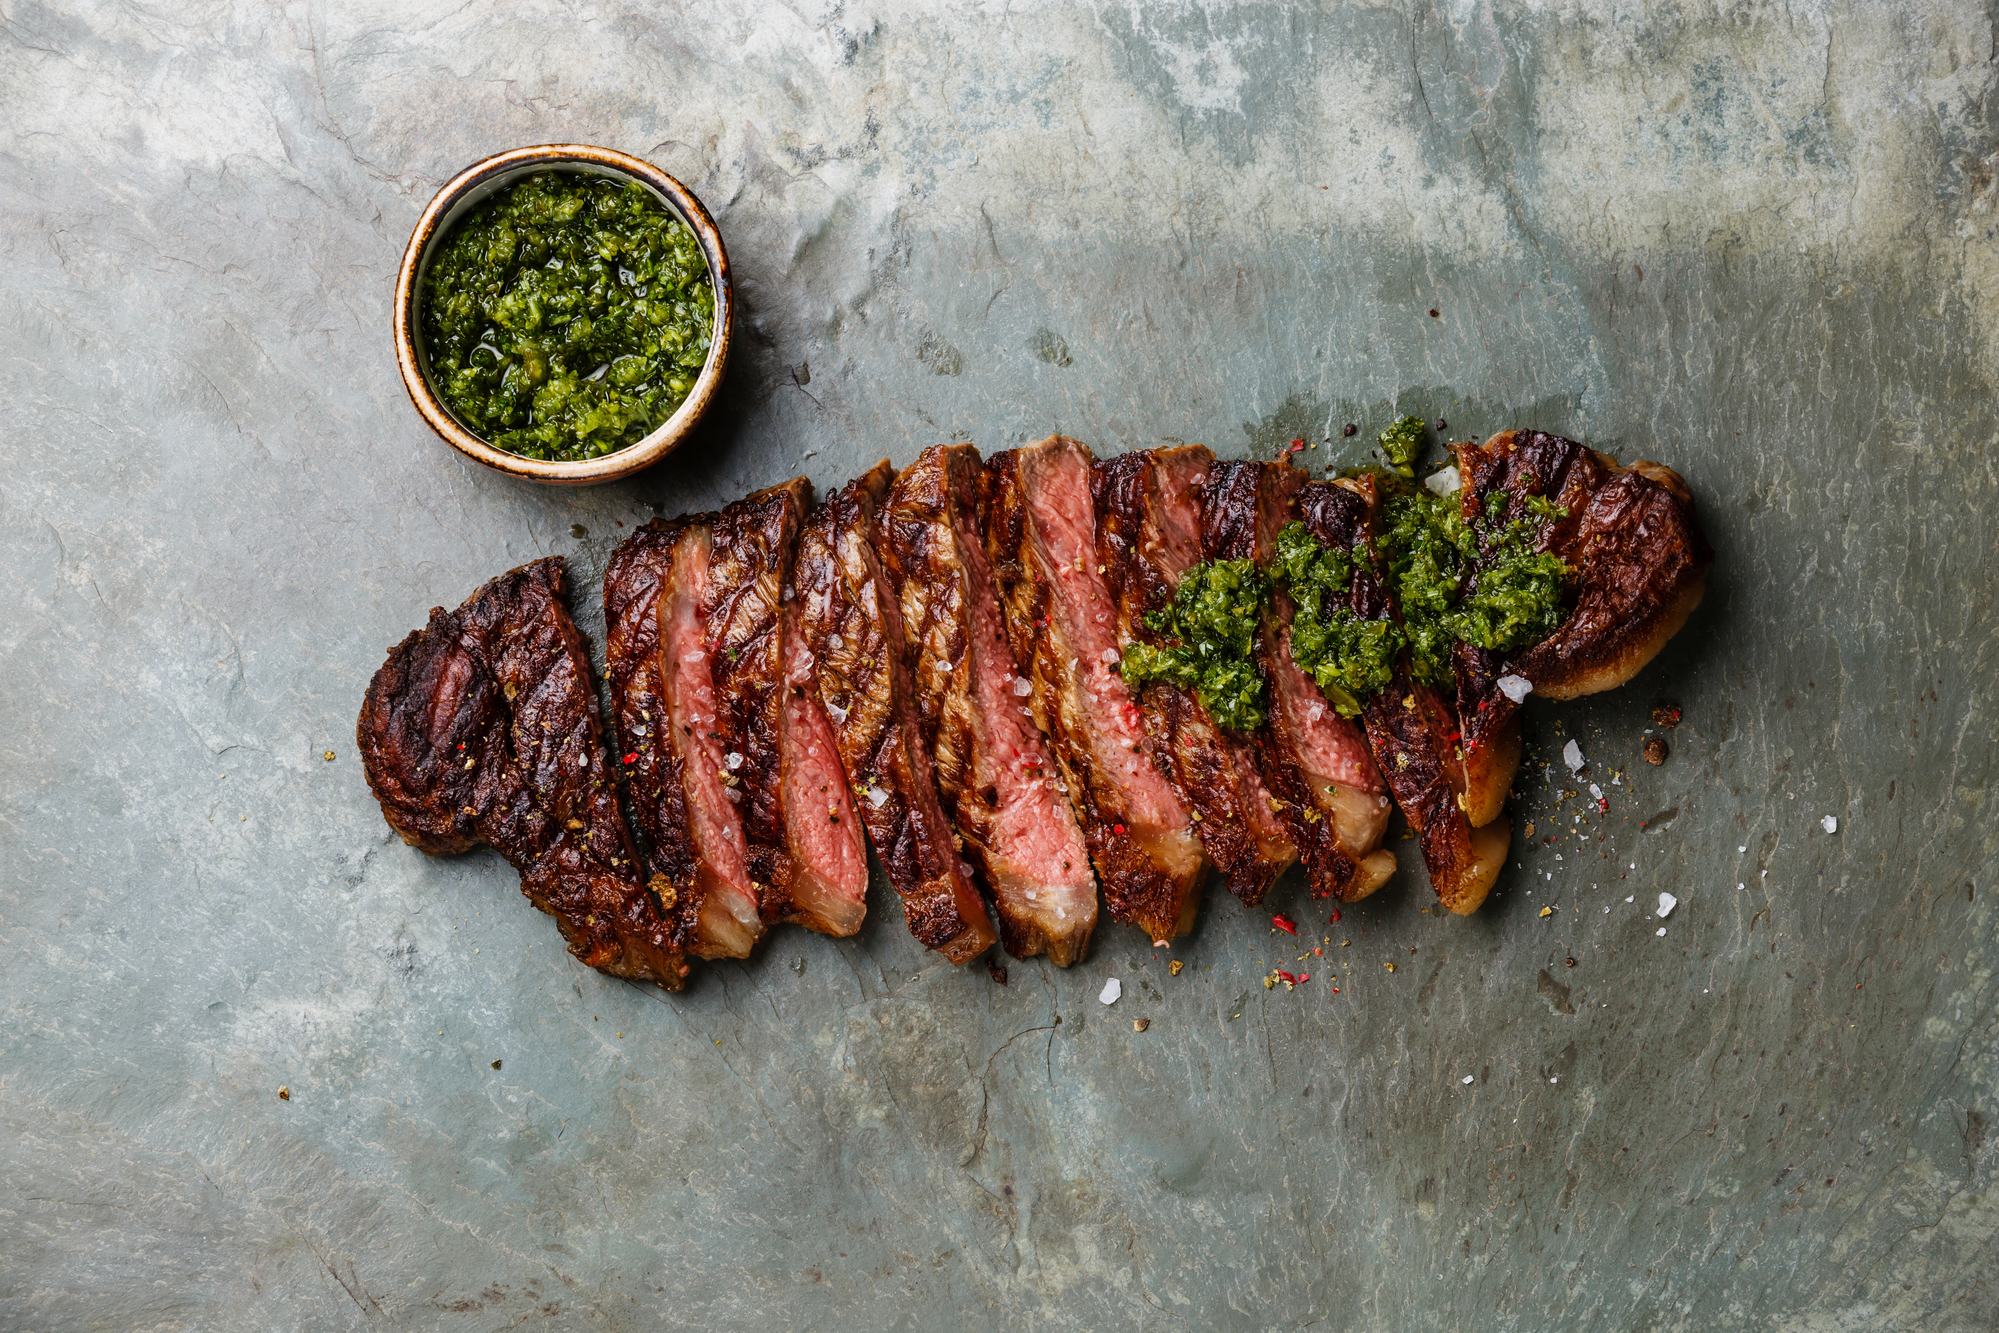 Sliced grilled beef barbecue Striploin steak with chimichurri sauce on gray stone slate background